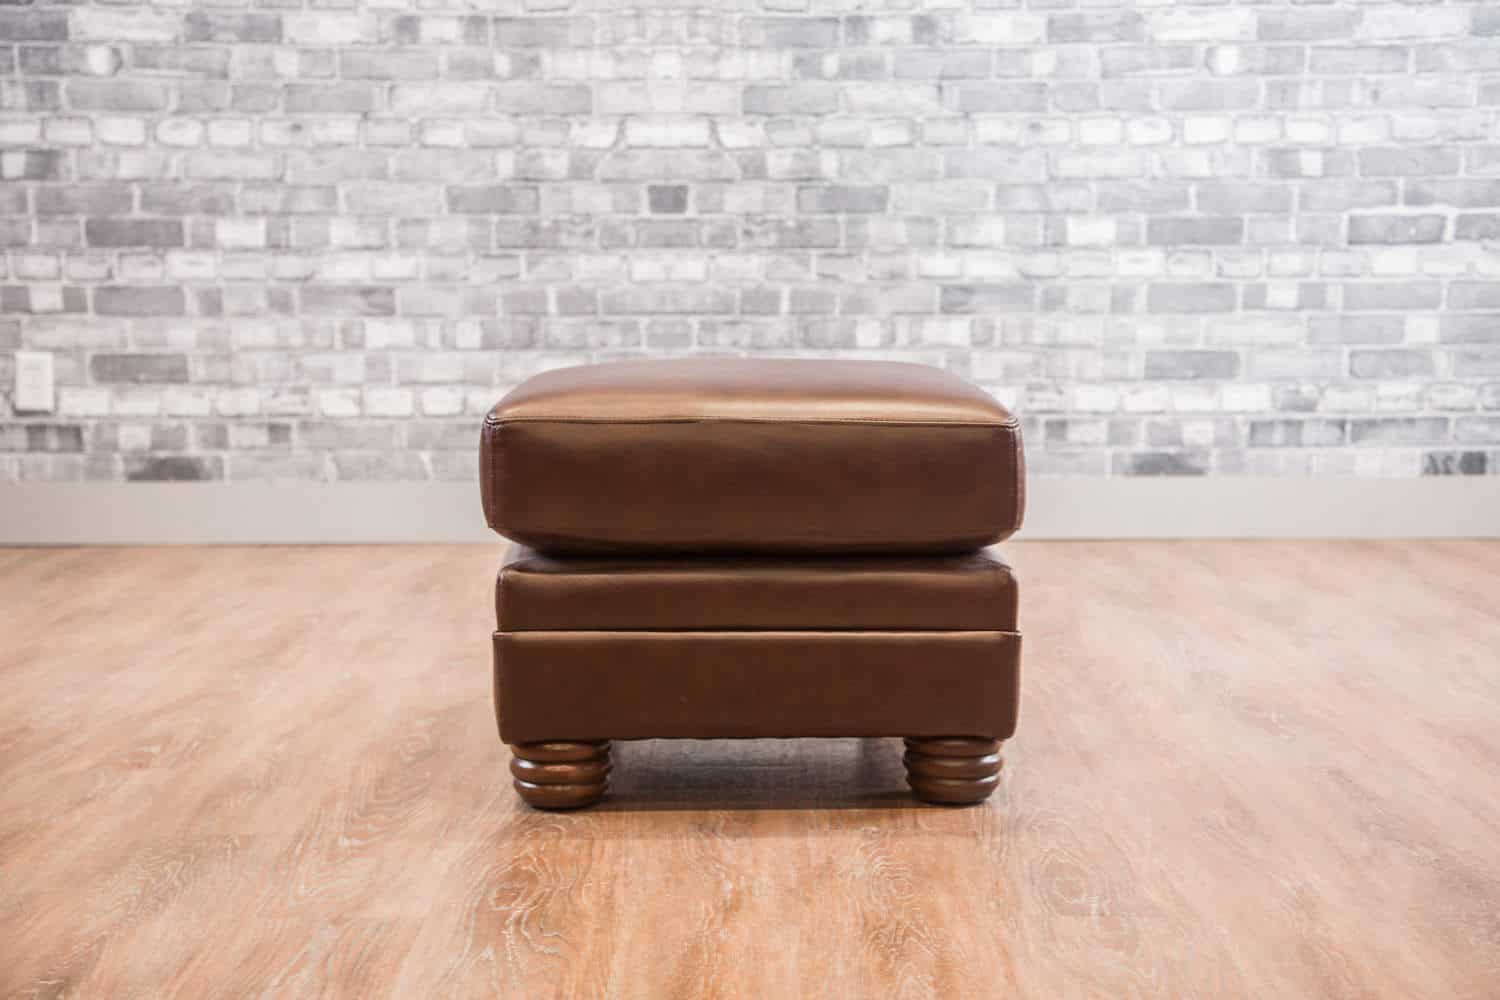 Leather Ottoman Canada Best Selling Home Decor Chatham  : MG8823 from haiwebdesign.com size 1500 x 1000 jpeg 110kB